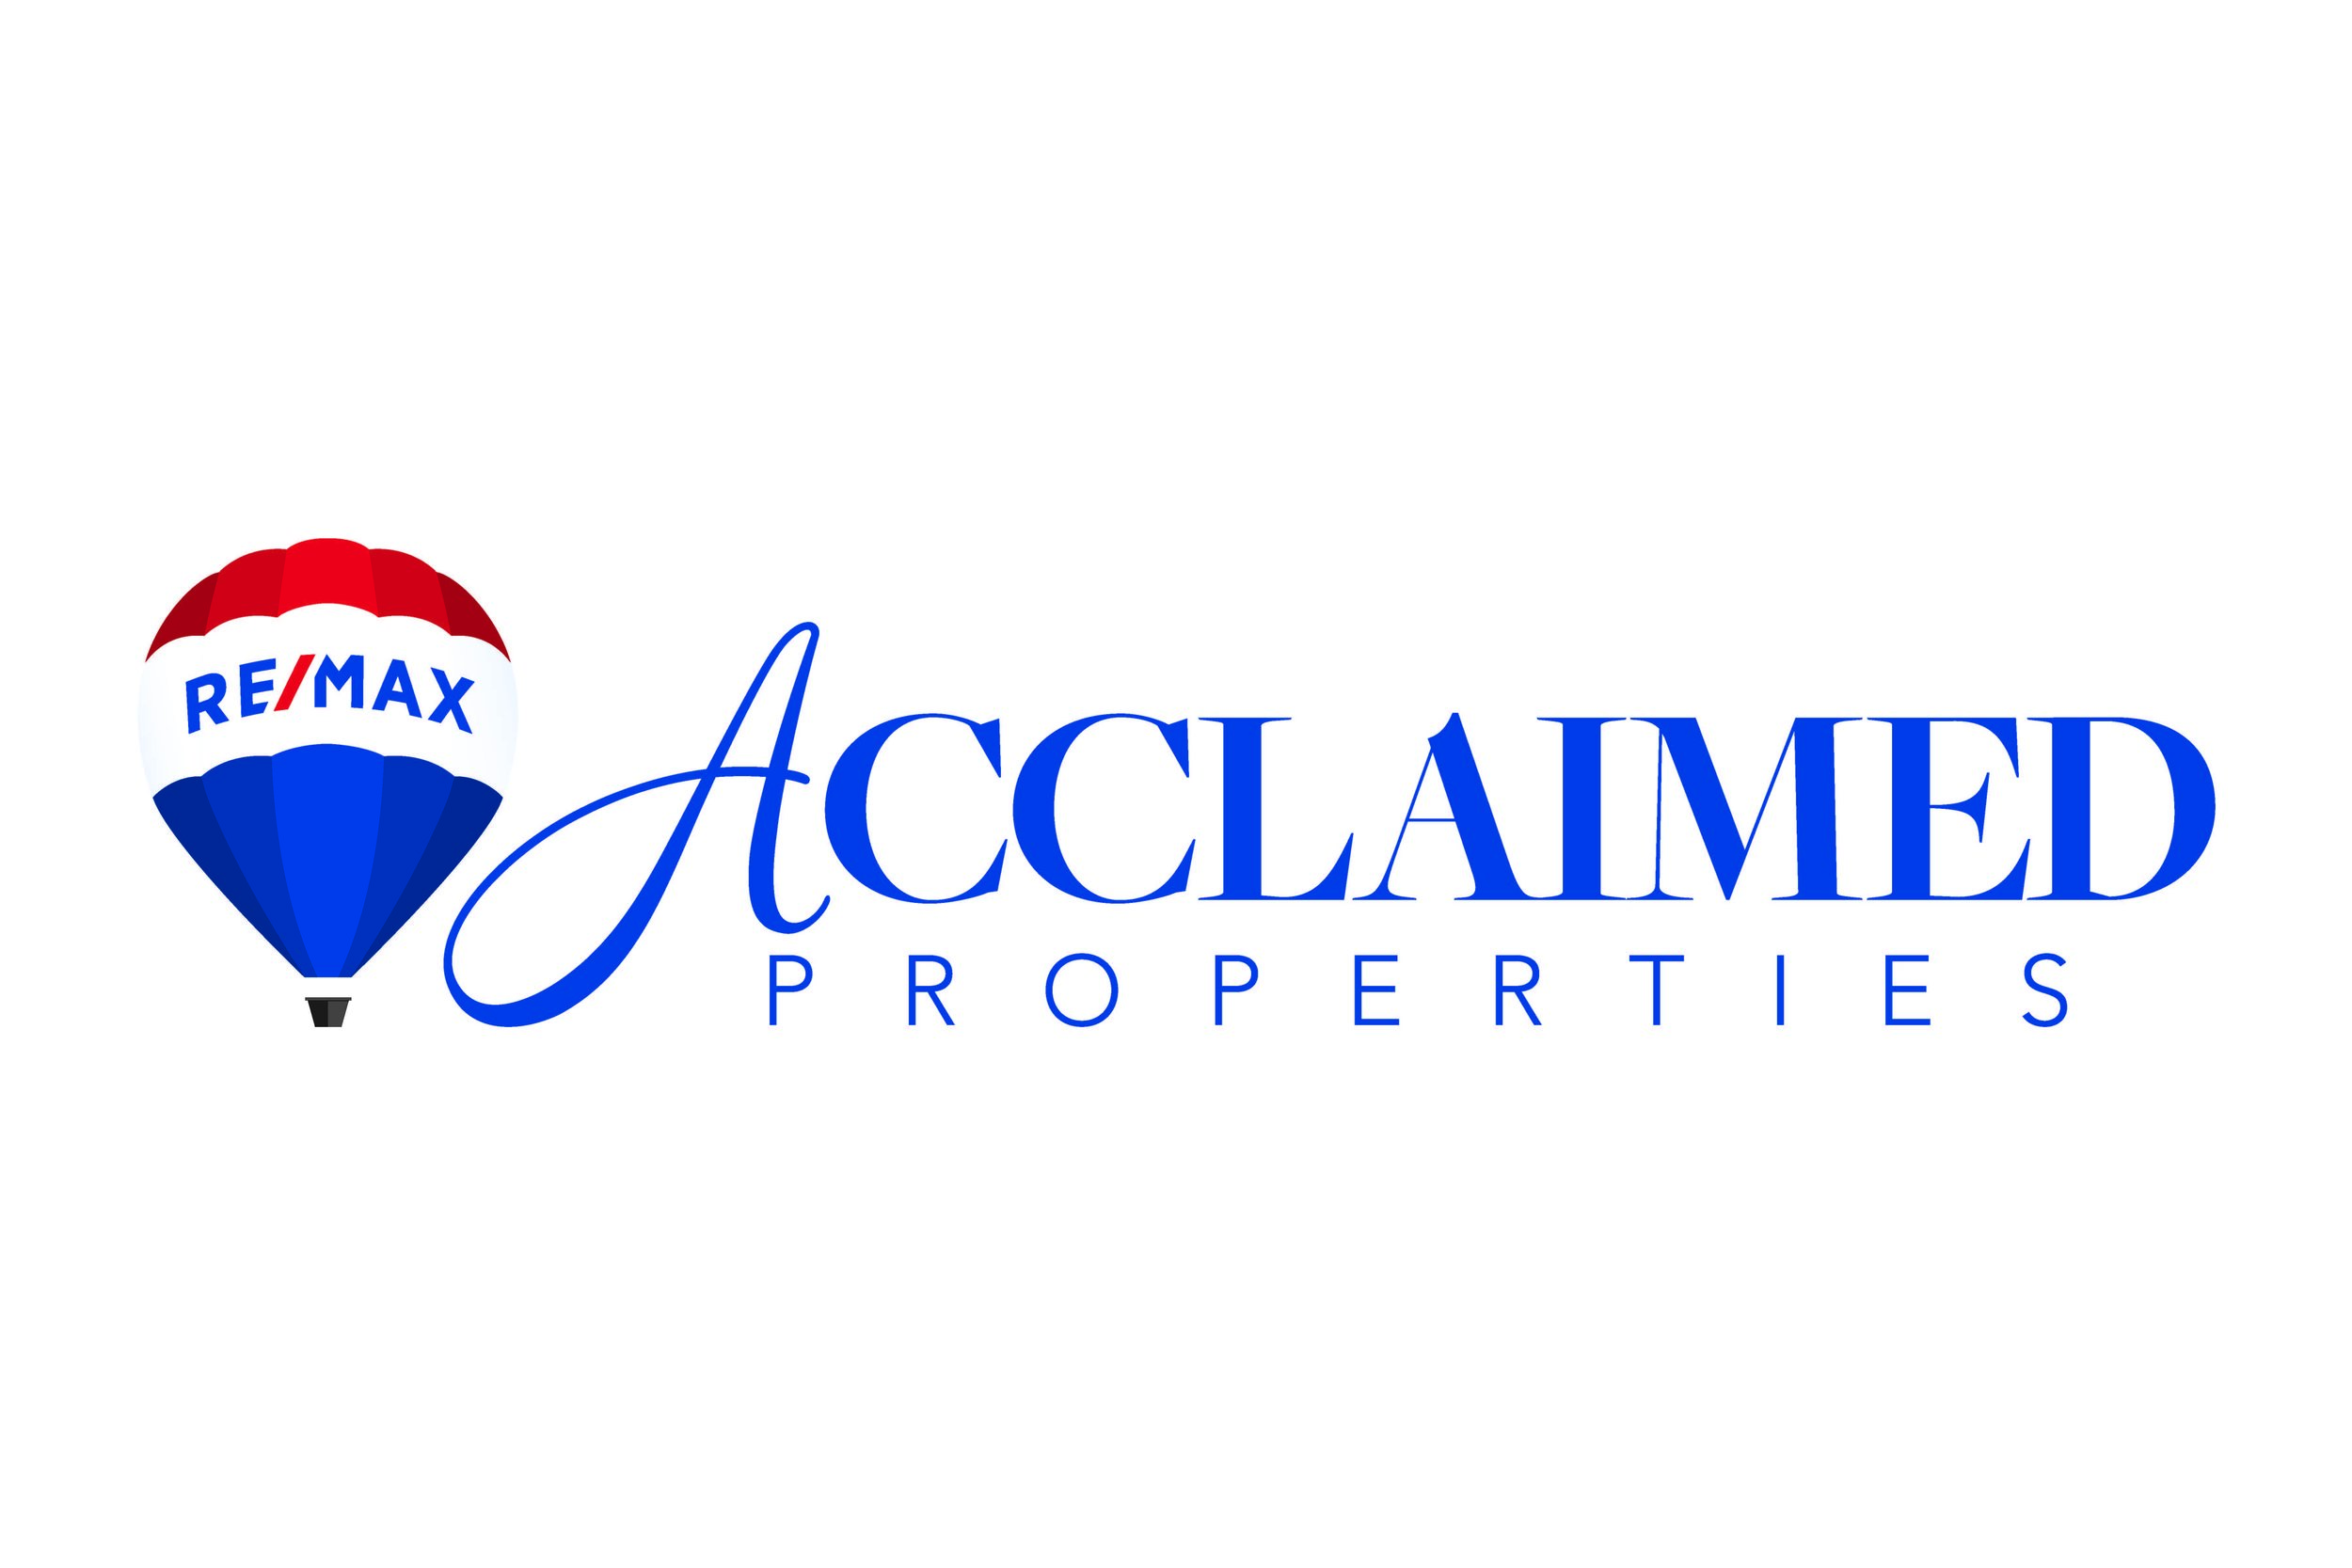 ReMaxAcclaimed_Residential24x36.jpg